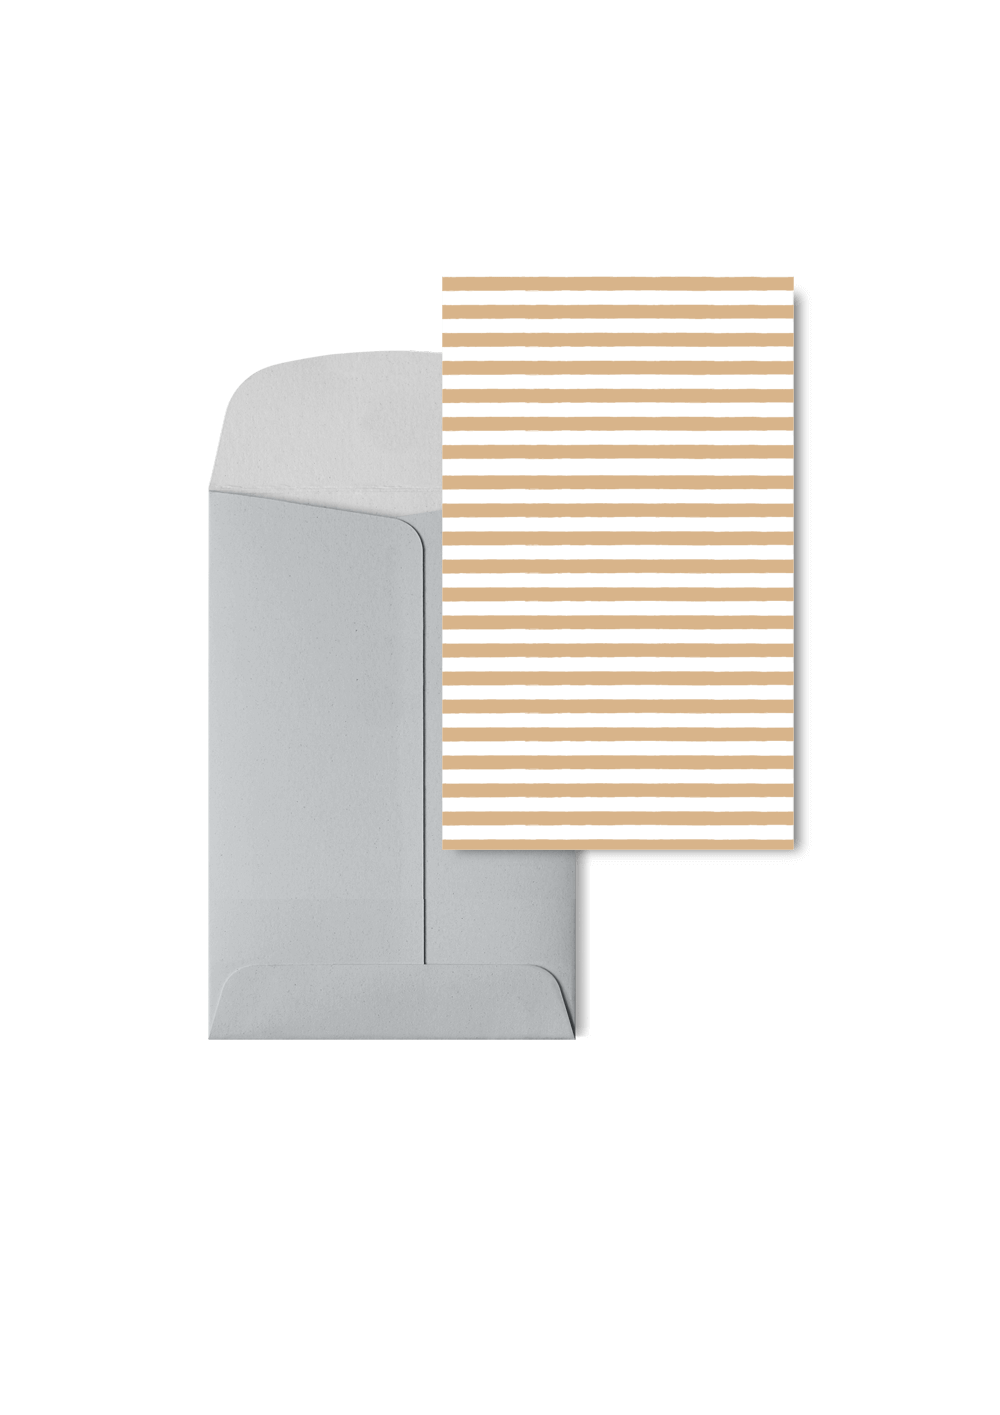 Stripetown Beige, 6 Karten Set by Karten Design Fabrik. Supplier of designer Greeting Cards, Gift Wrap, Christmas Cards & Invitations to leading design stores including Connox, Modulor, Magazin & Manufactum.